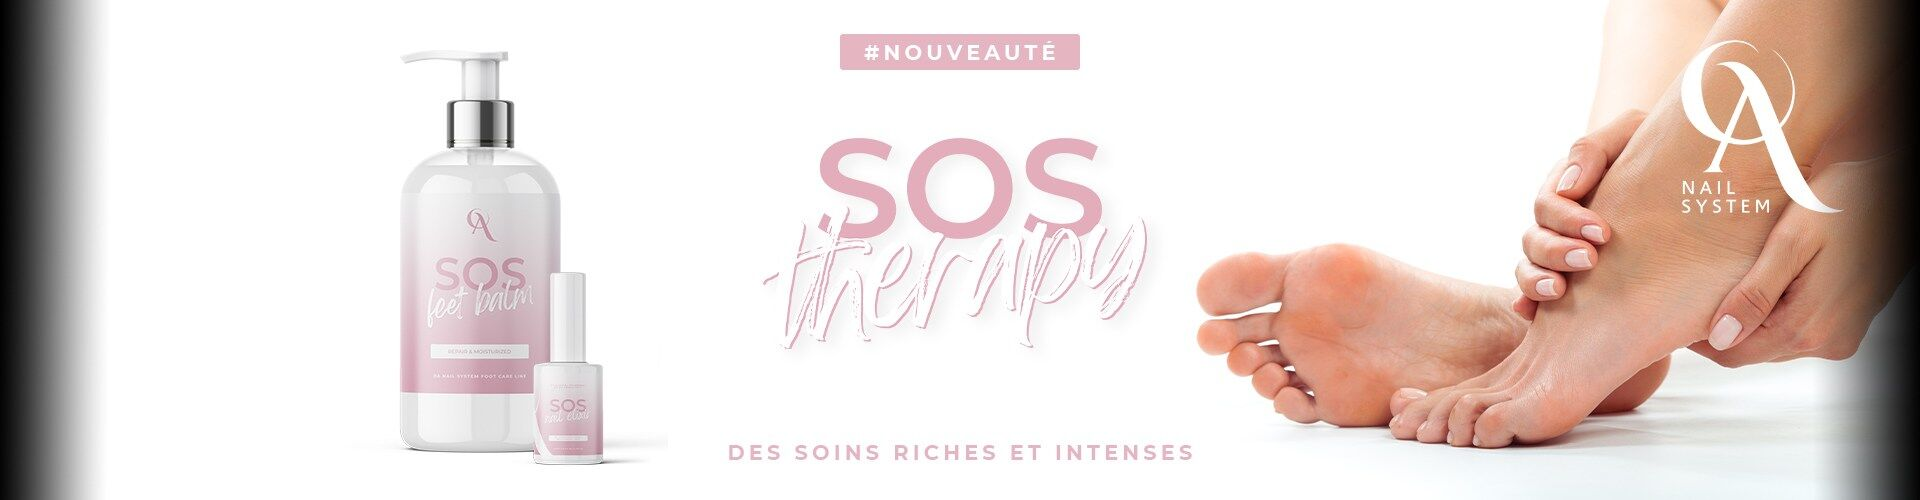 SLIDE 2 - SOS THERAPY